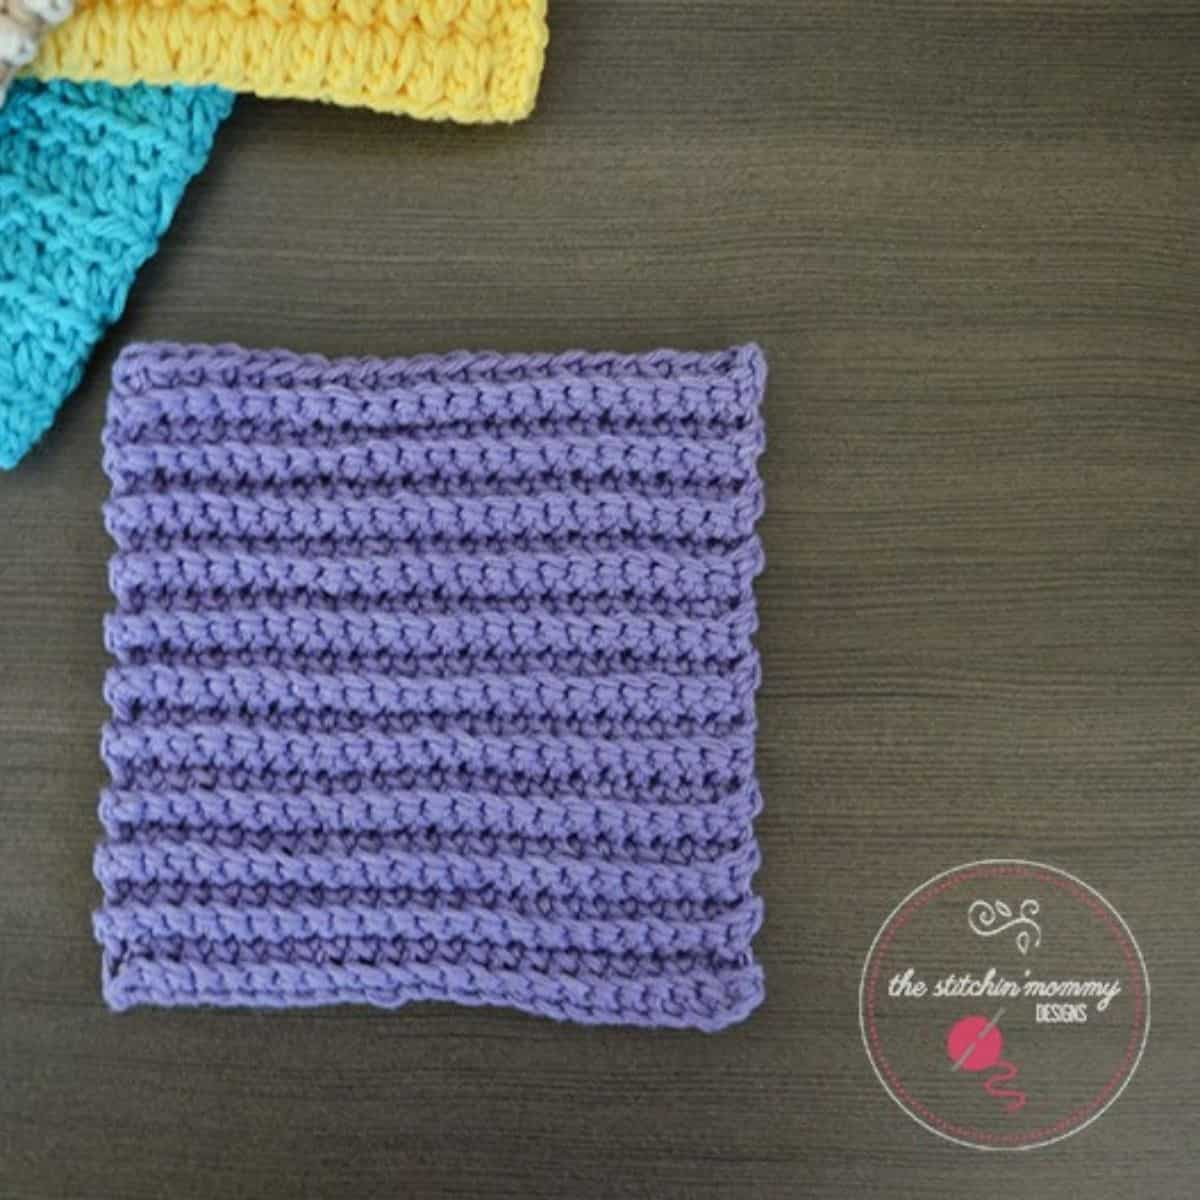 ribbed dishcloth laying flat with other dishcloths peeking from the corner